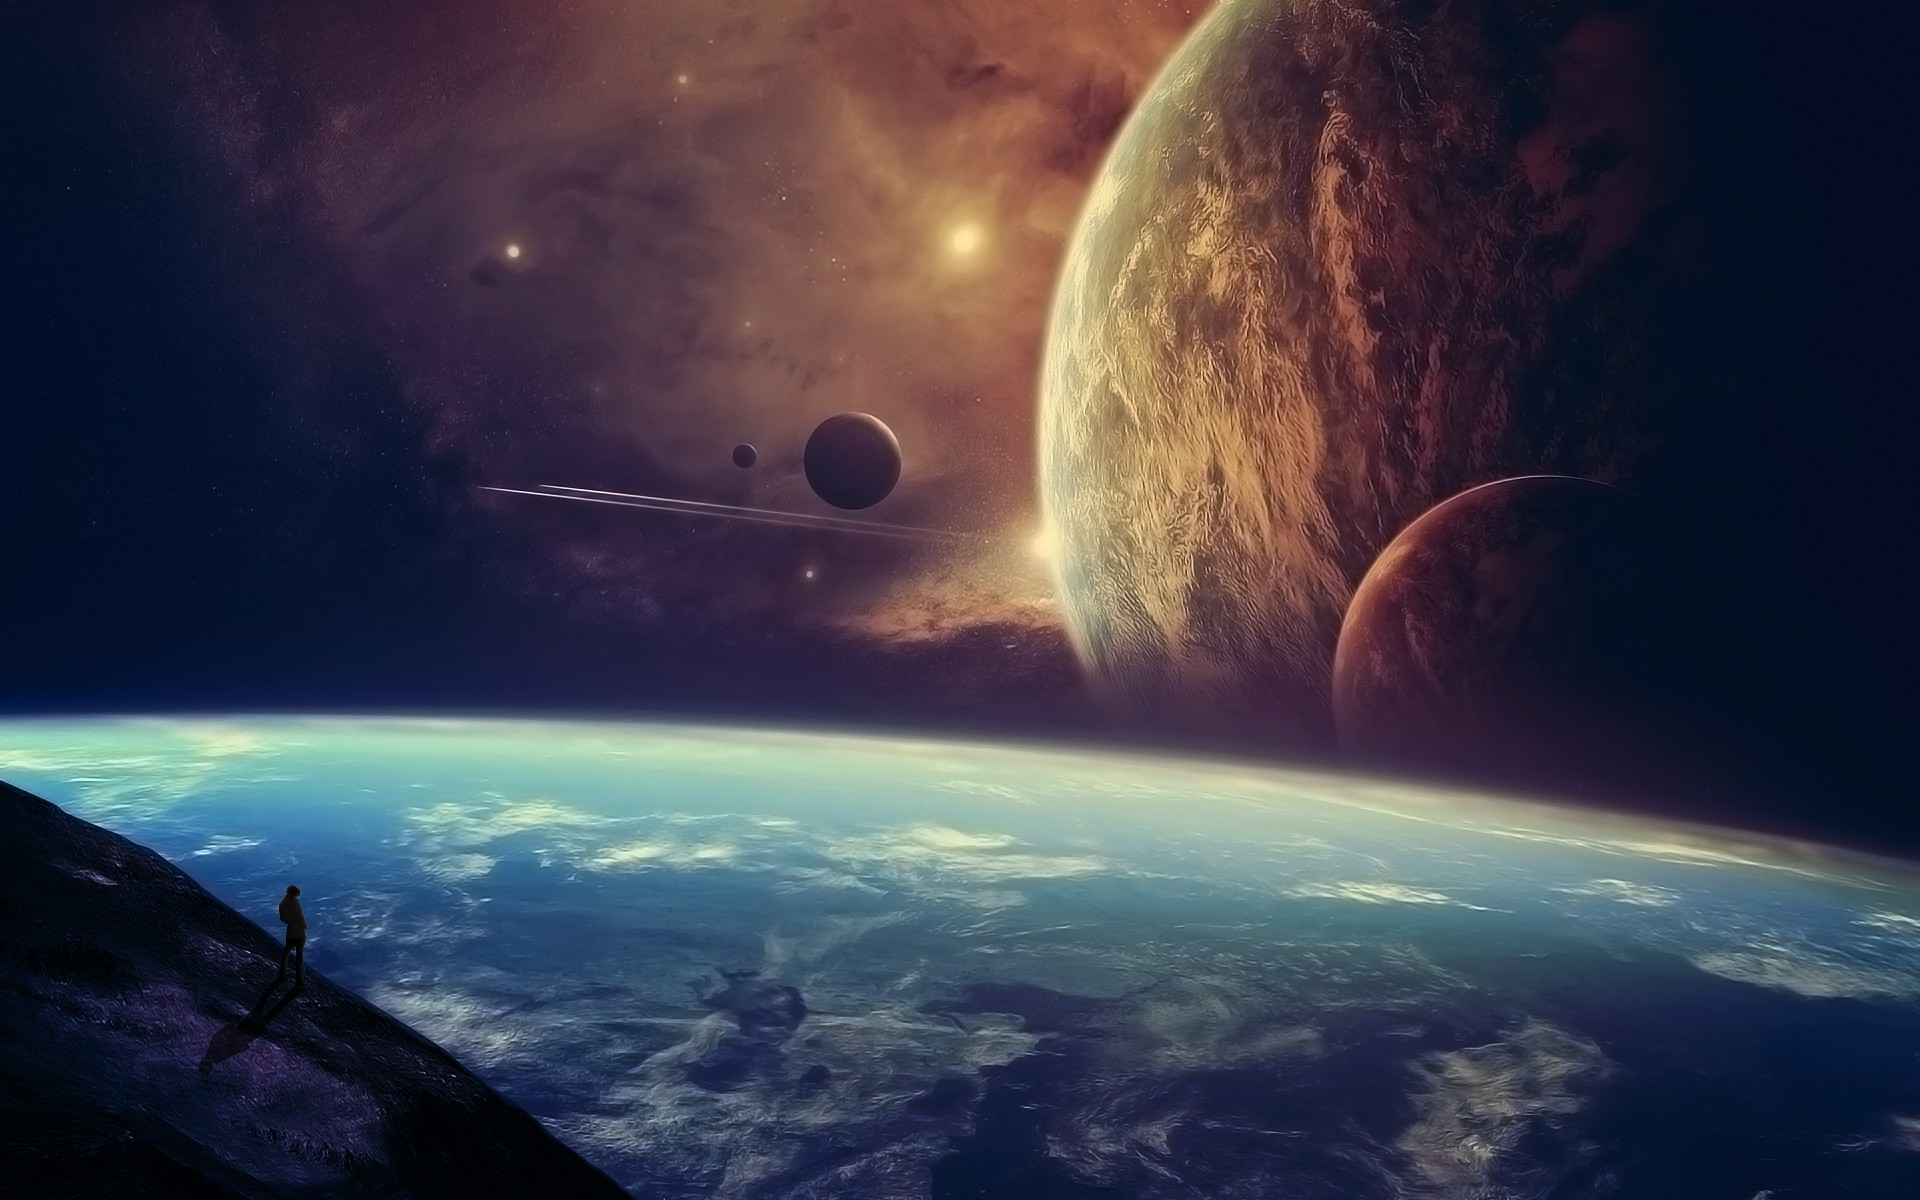 Fantasy space wallpapers 71 images - Fantasy wallpaper tablets ...